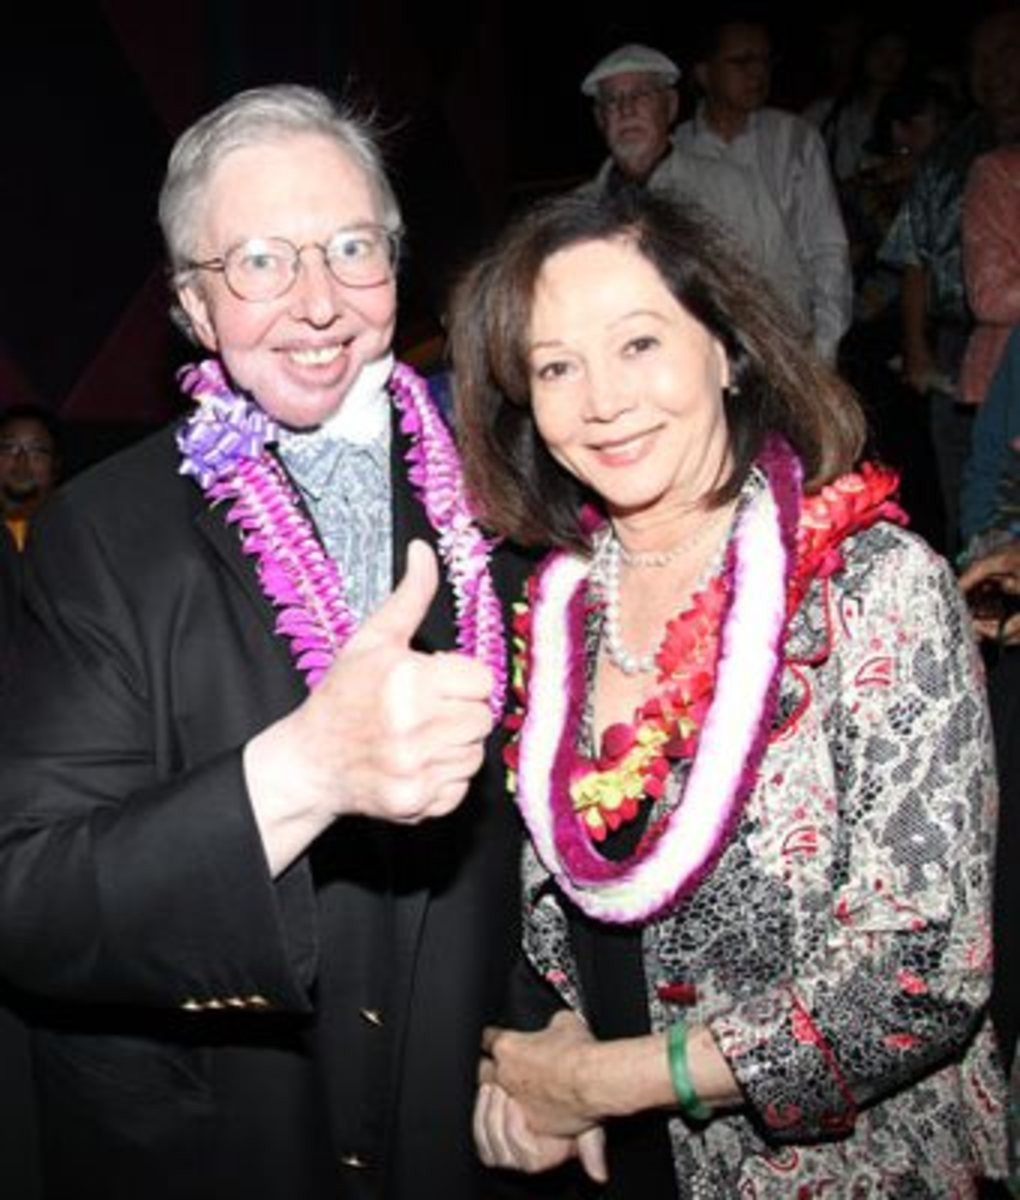 The Late Roger Ebert, standing beside Nancy Kwan. Photo taken in 2010.